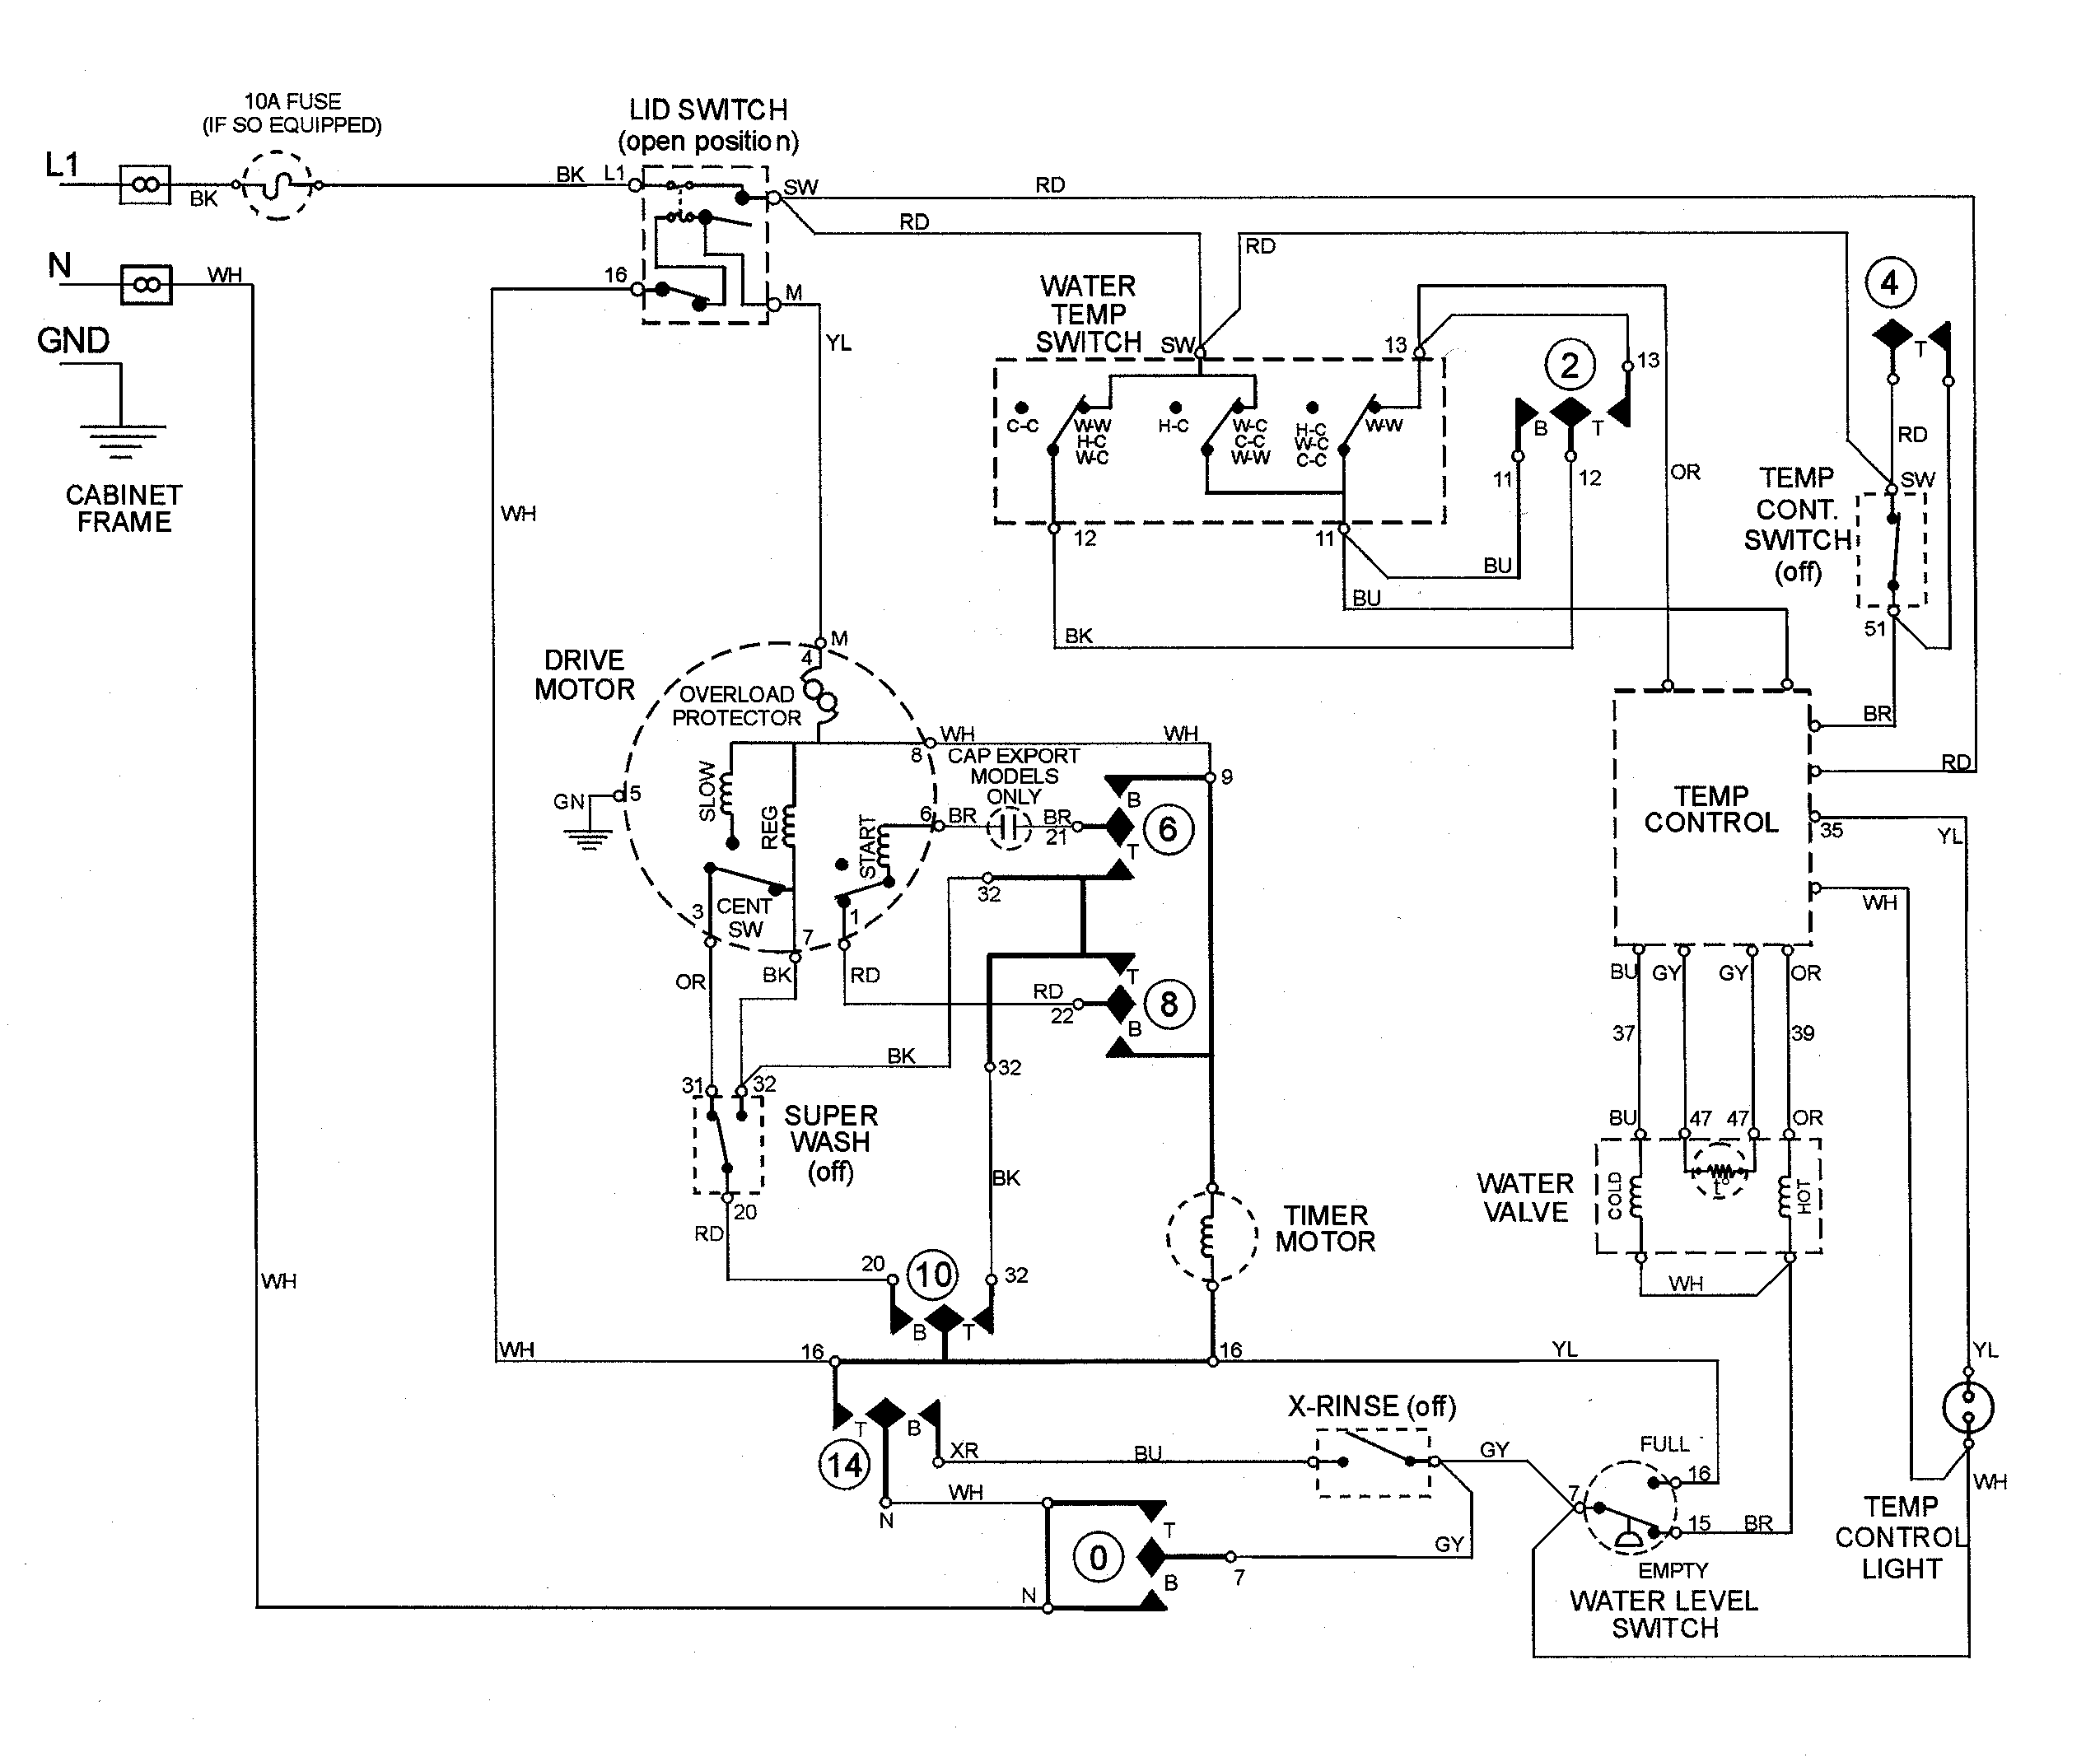 medium resolution of ge electric motor diagram wiring diagram name ge motor diagram wiring diagram rows general electric motor